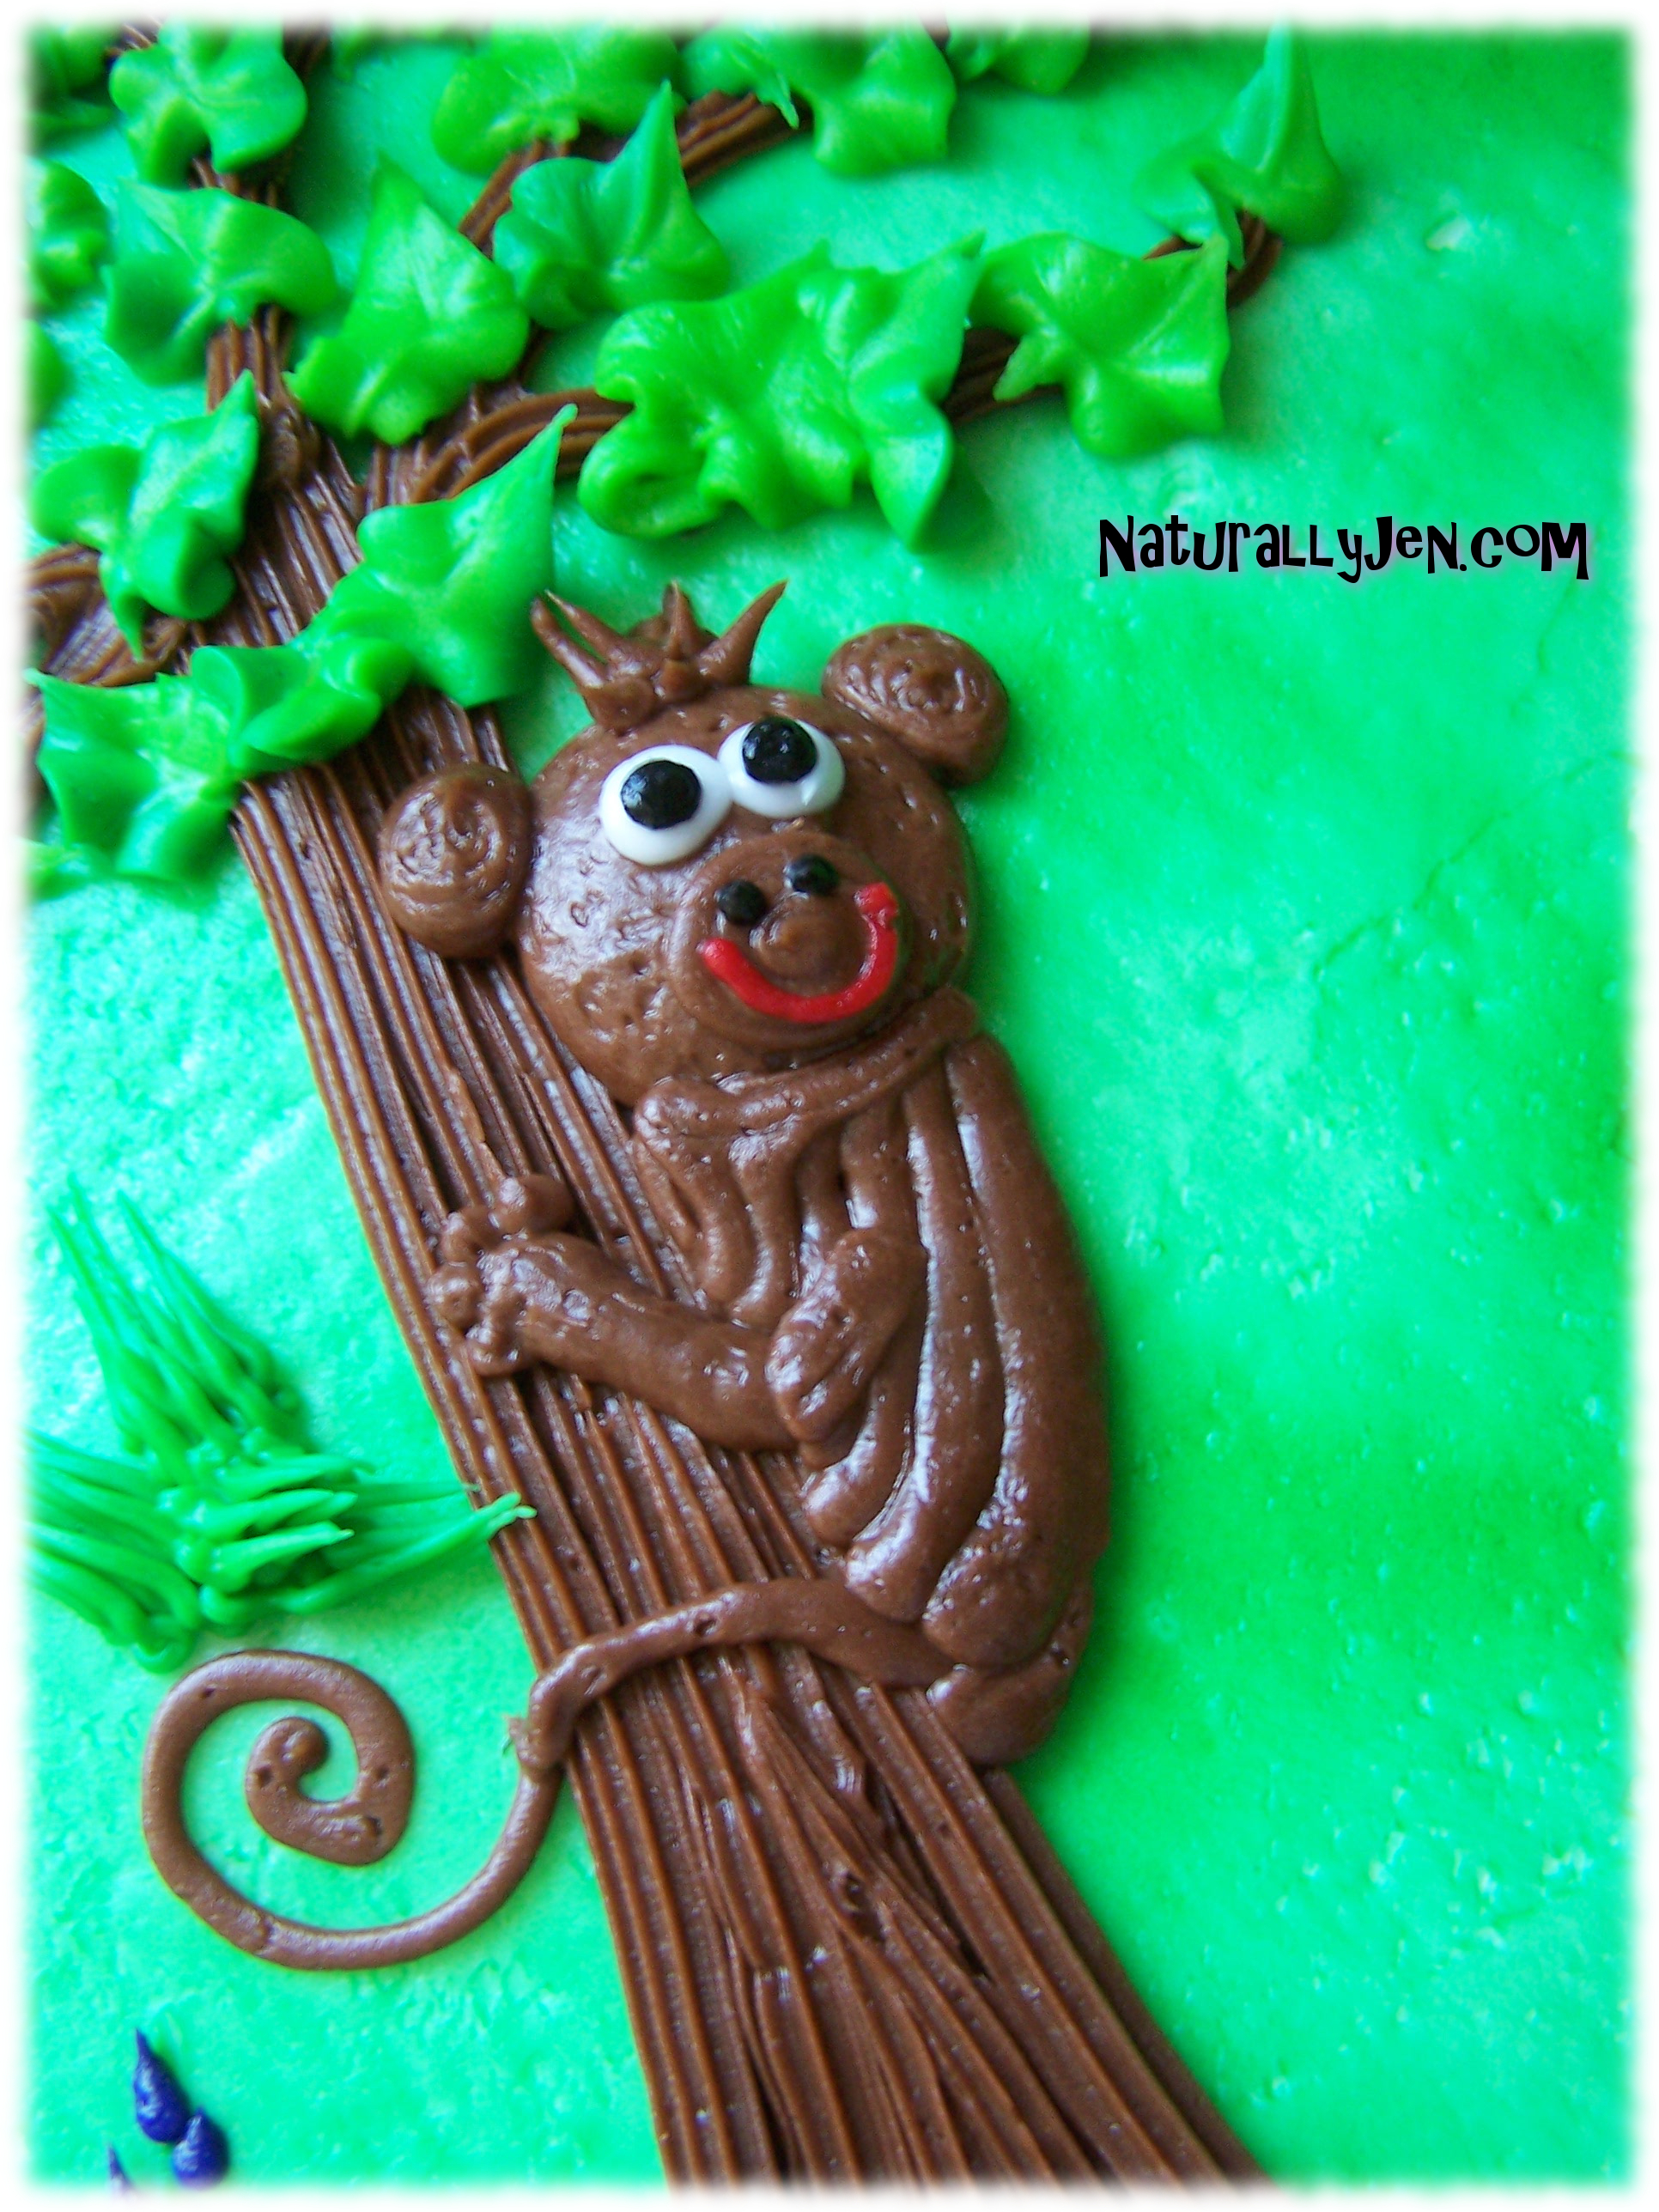 Frosting Monkey on Birthday Cake